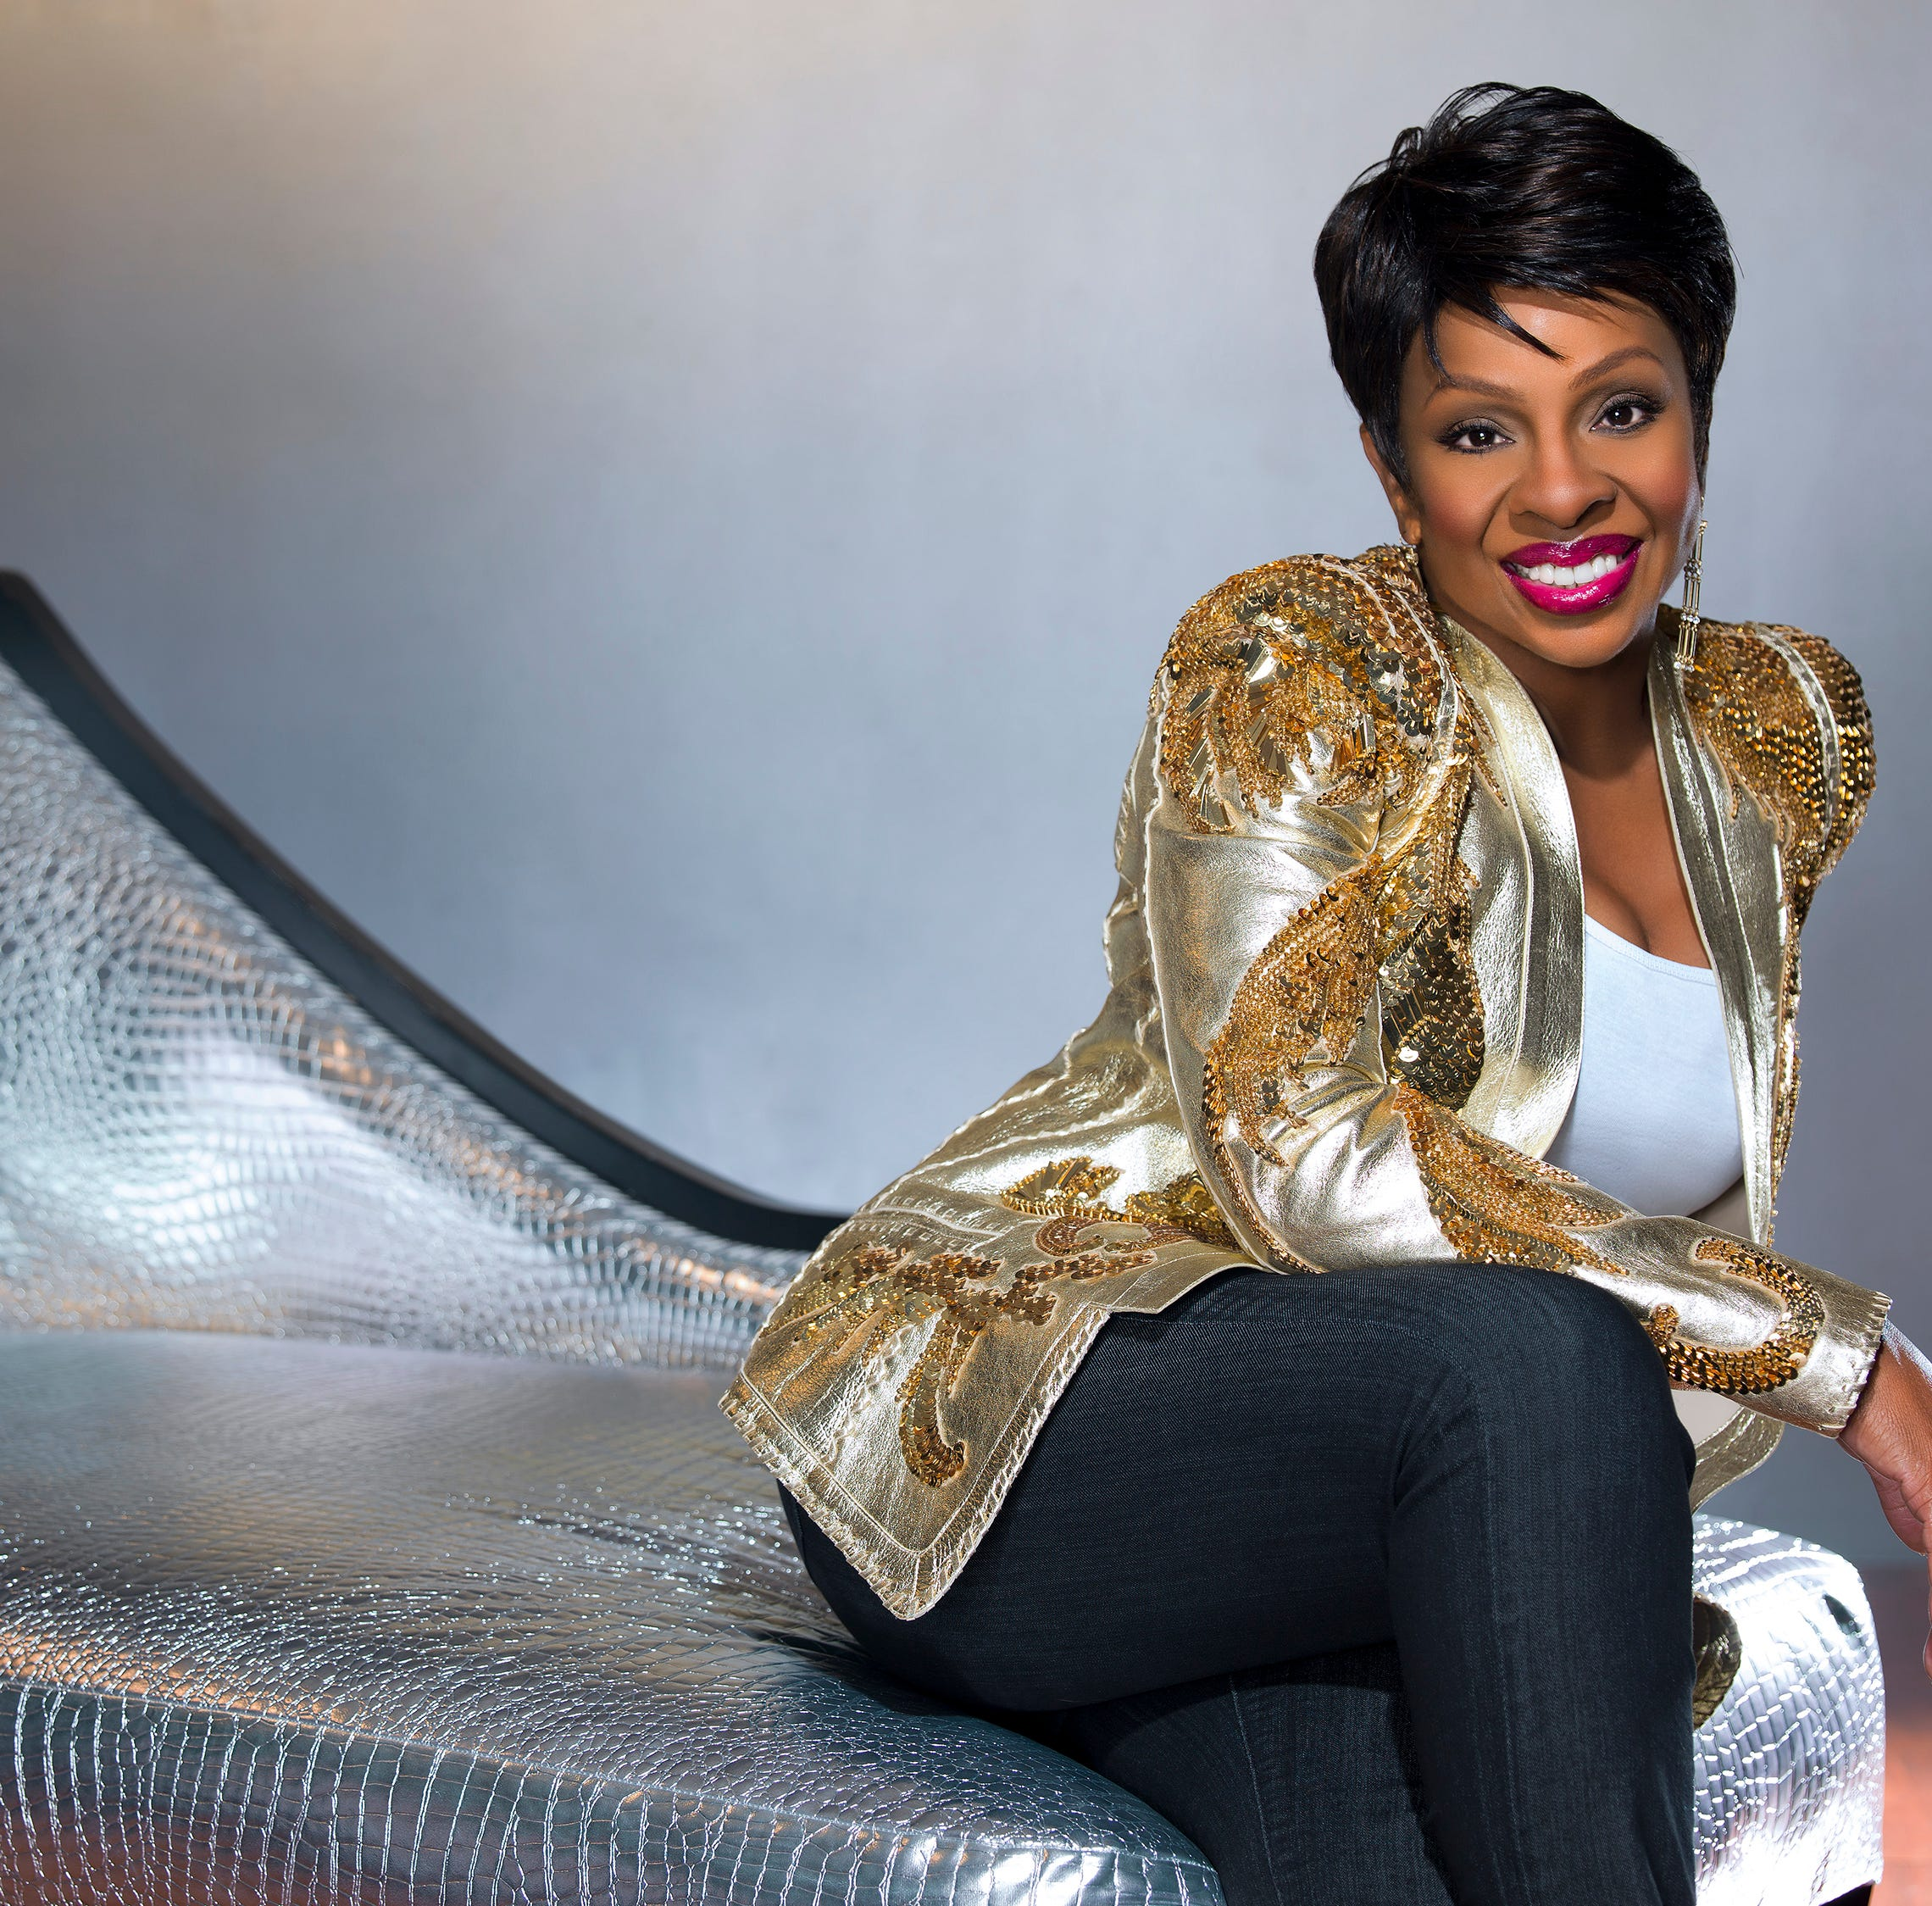 R&B icon Gladys Knight to play concert in Greenville